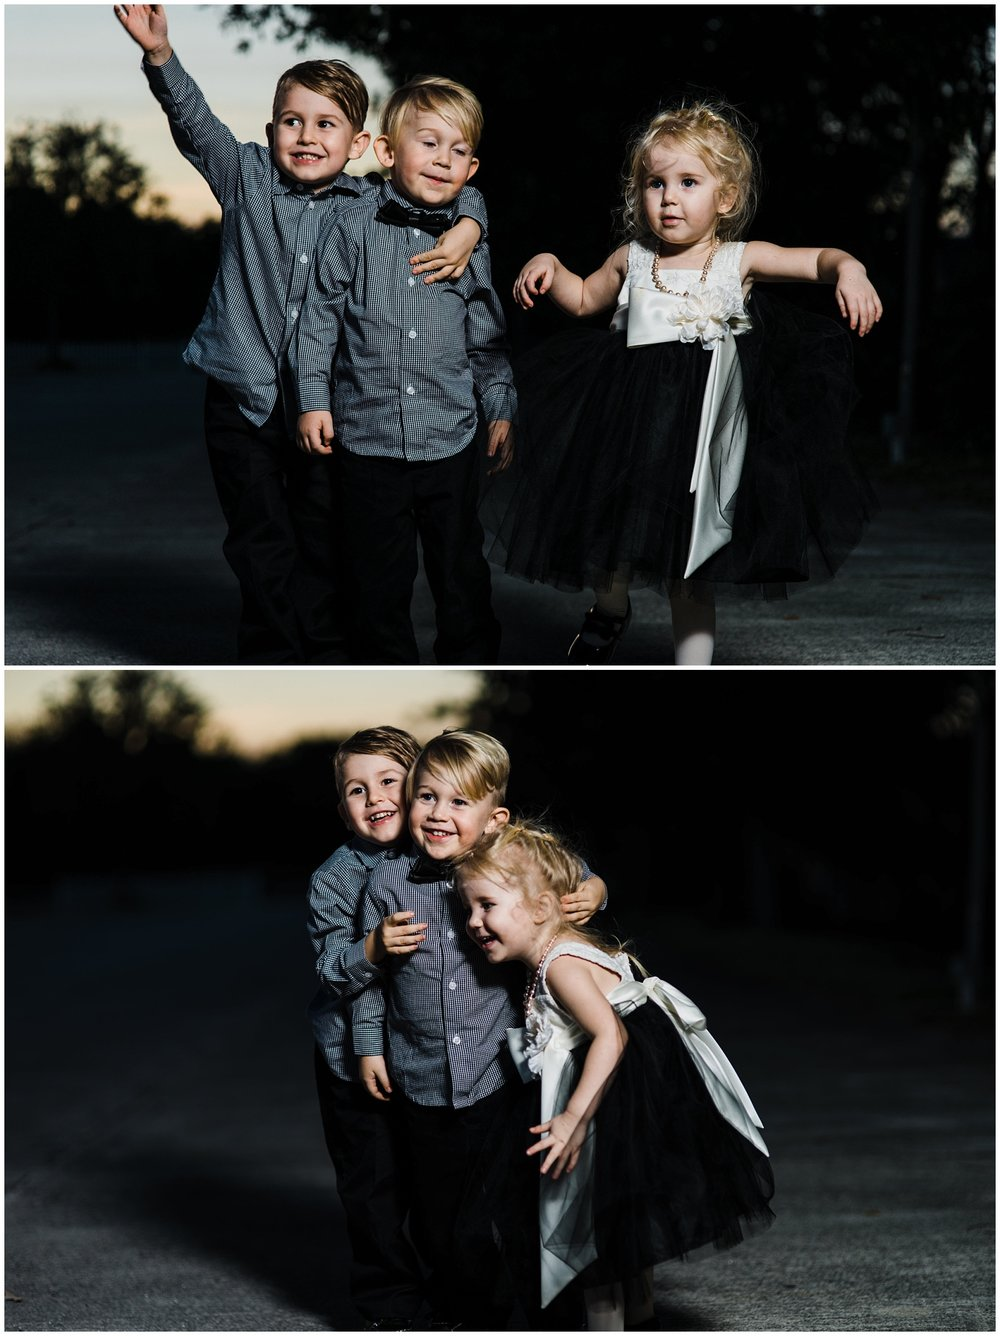 Okay! Maybe it gets a little bit sweeter. Hee-Hee. These cousins are just the cutest!  That's a whole lotta love goin on, yall!